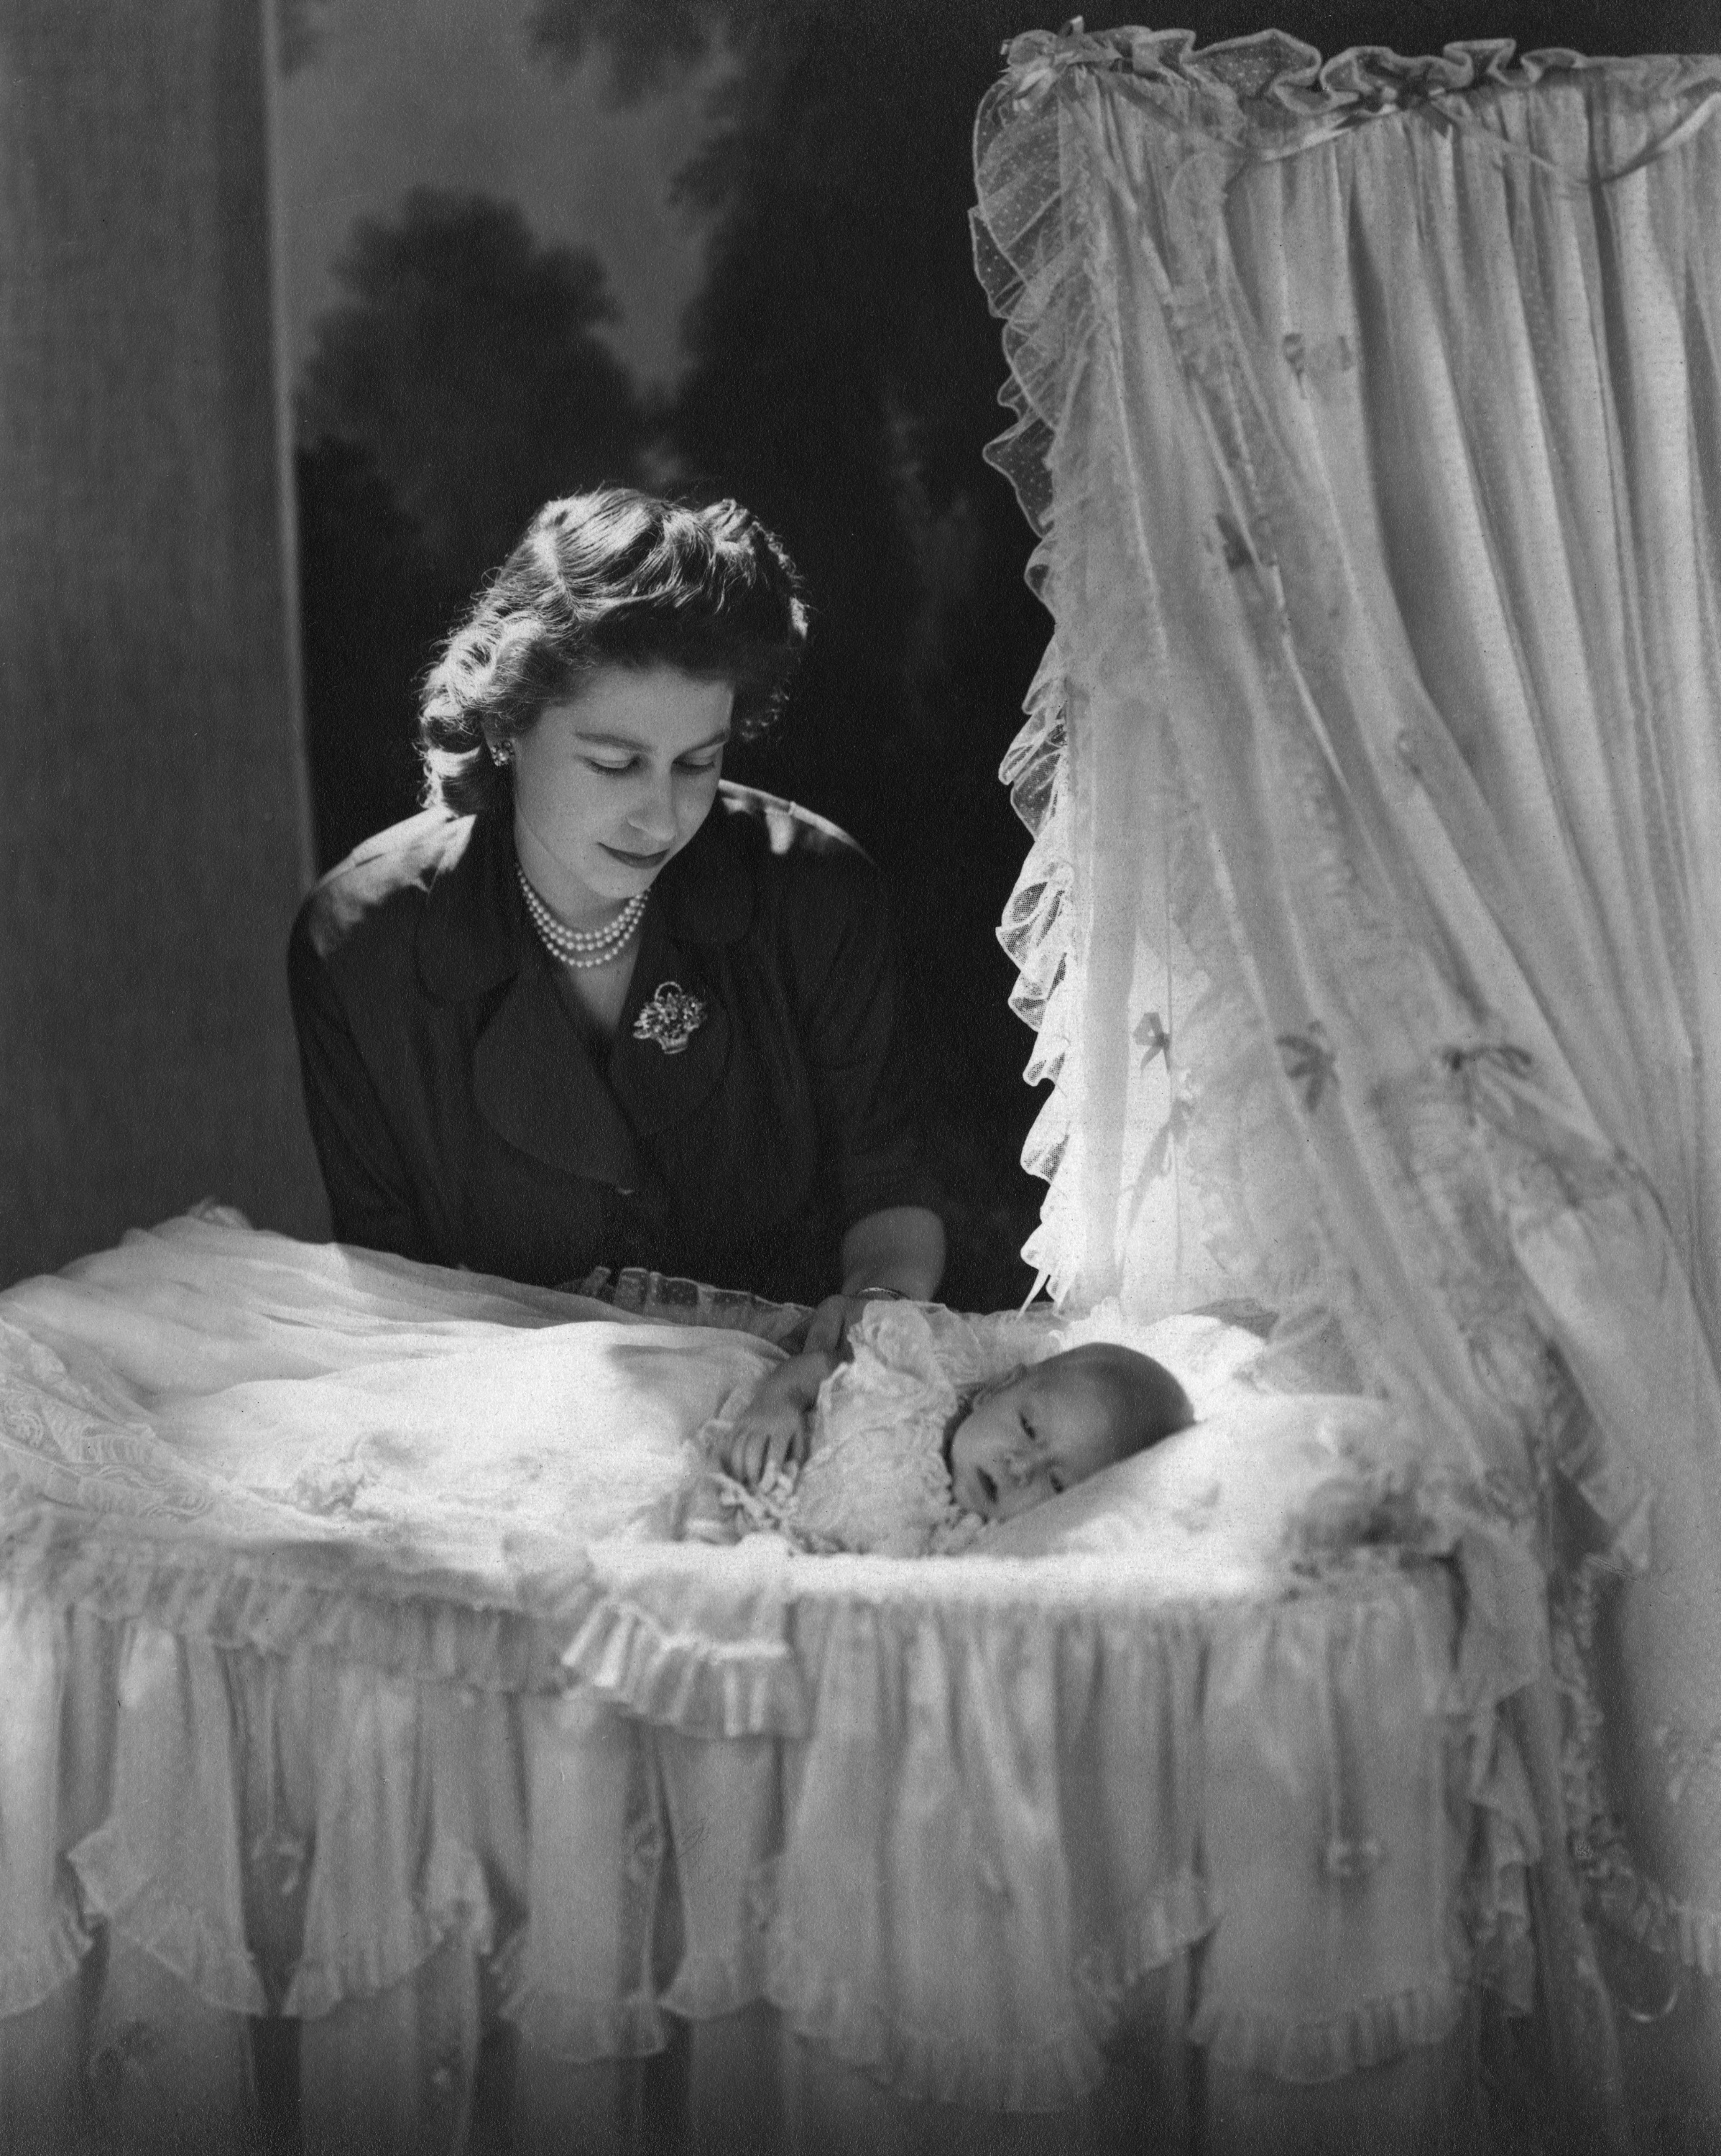 Queen E_HTRA596_VV074_H.JPGPrincess Elizabeth (Queen Elizabeth II) gazes down at her firstborn child, Prince Charles (Prince of Wales) lying in his cradle.